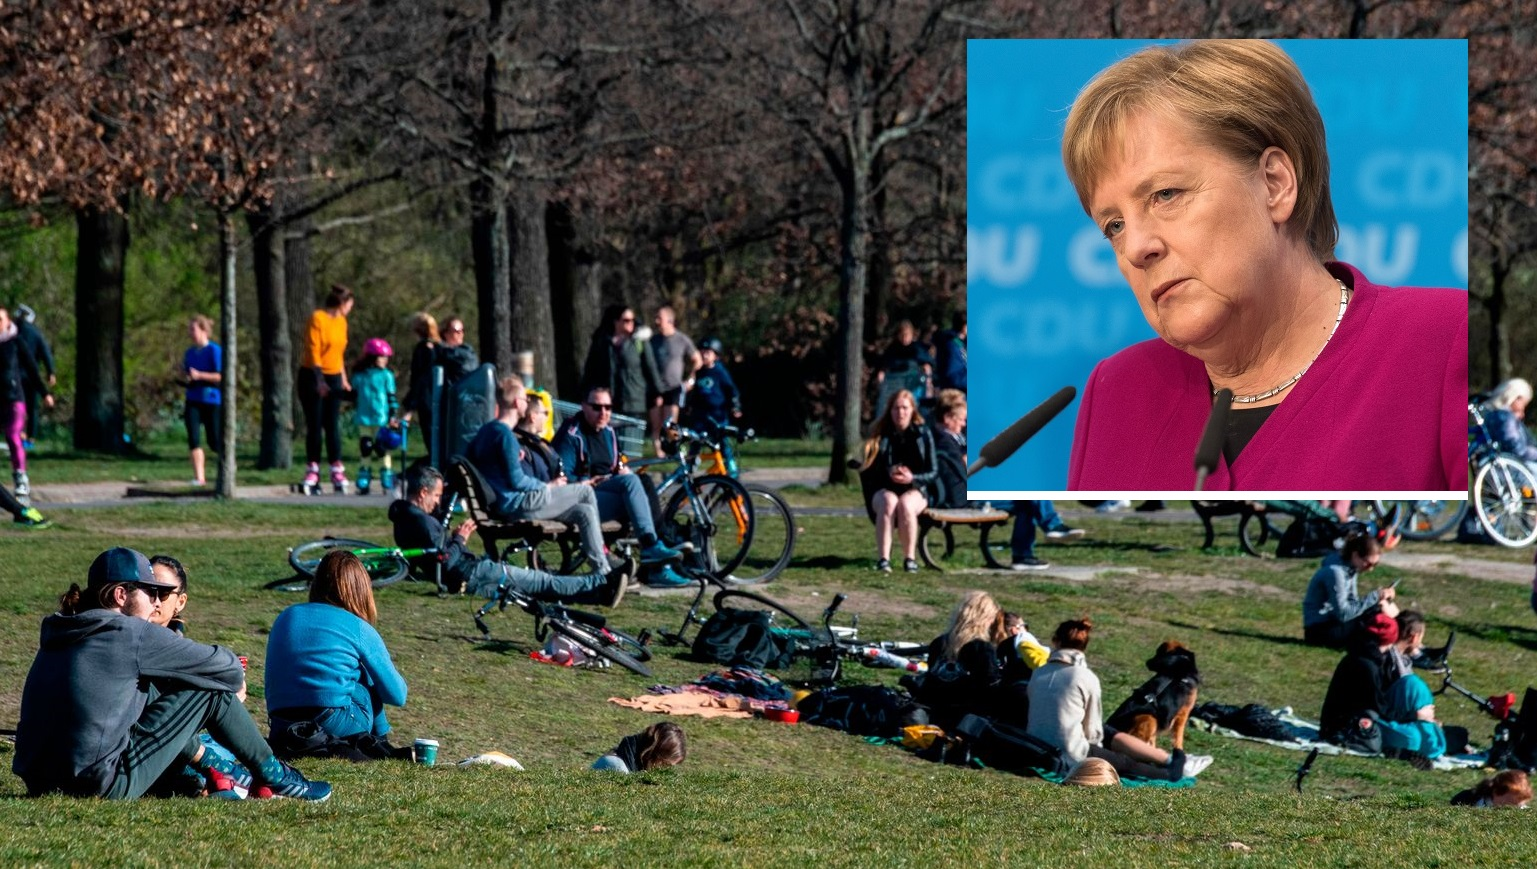 German Chancellor Angela Merkel Has Been Quarantined